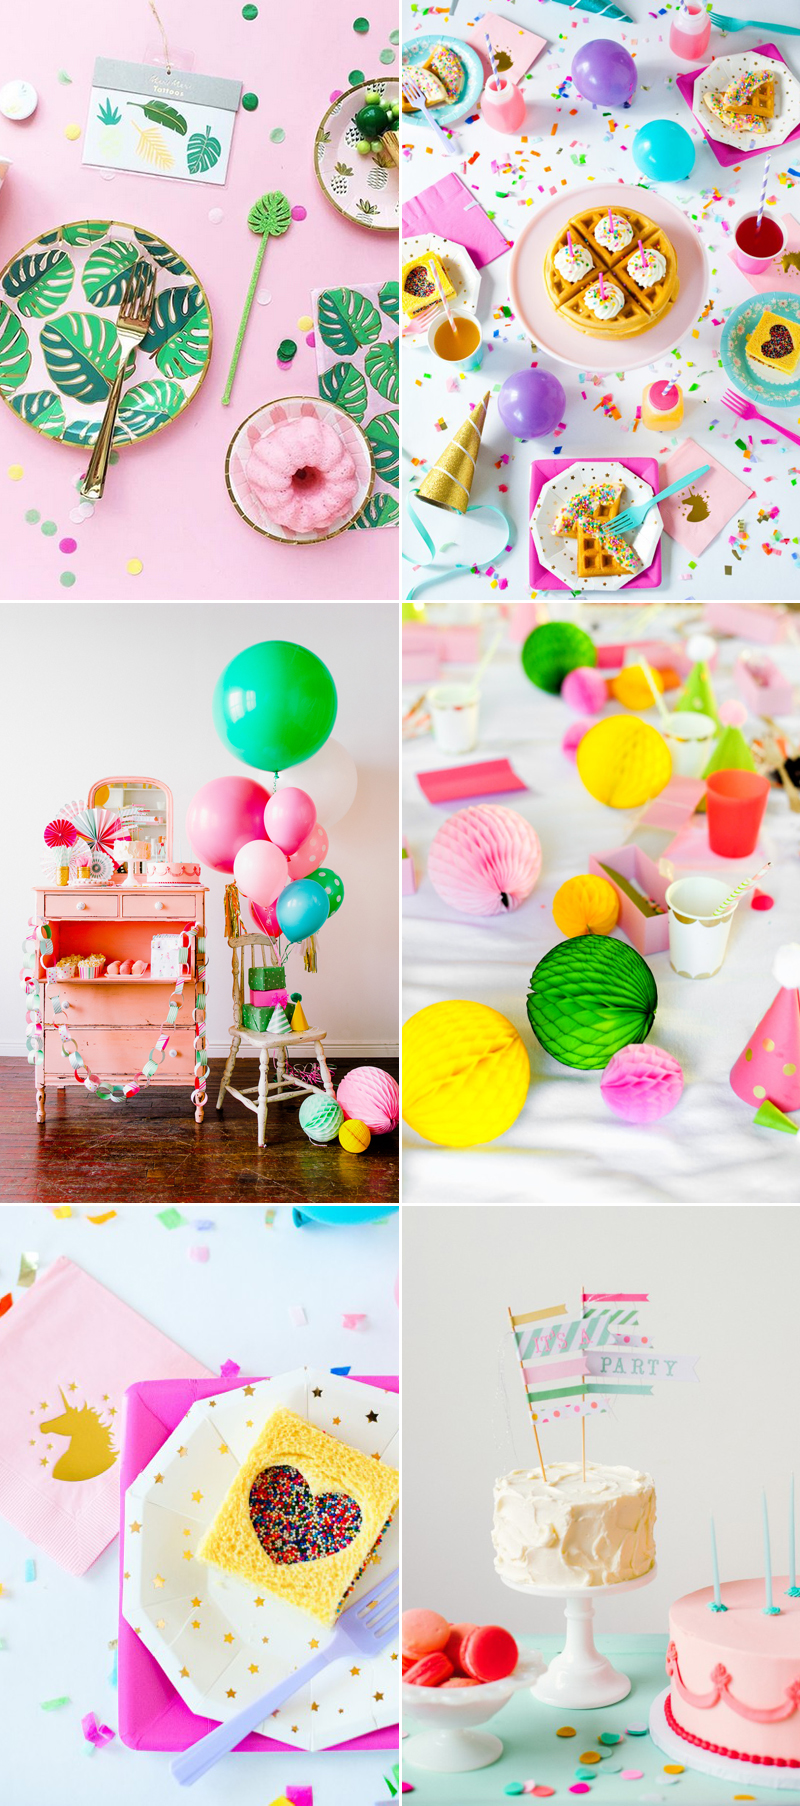 DIY Party01-ShopSweetLulu